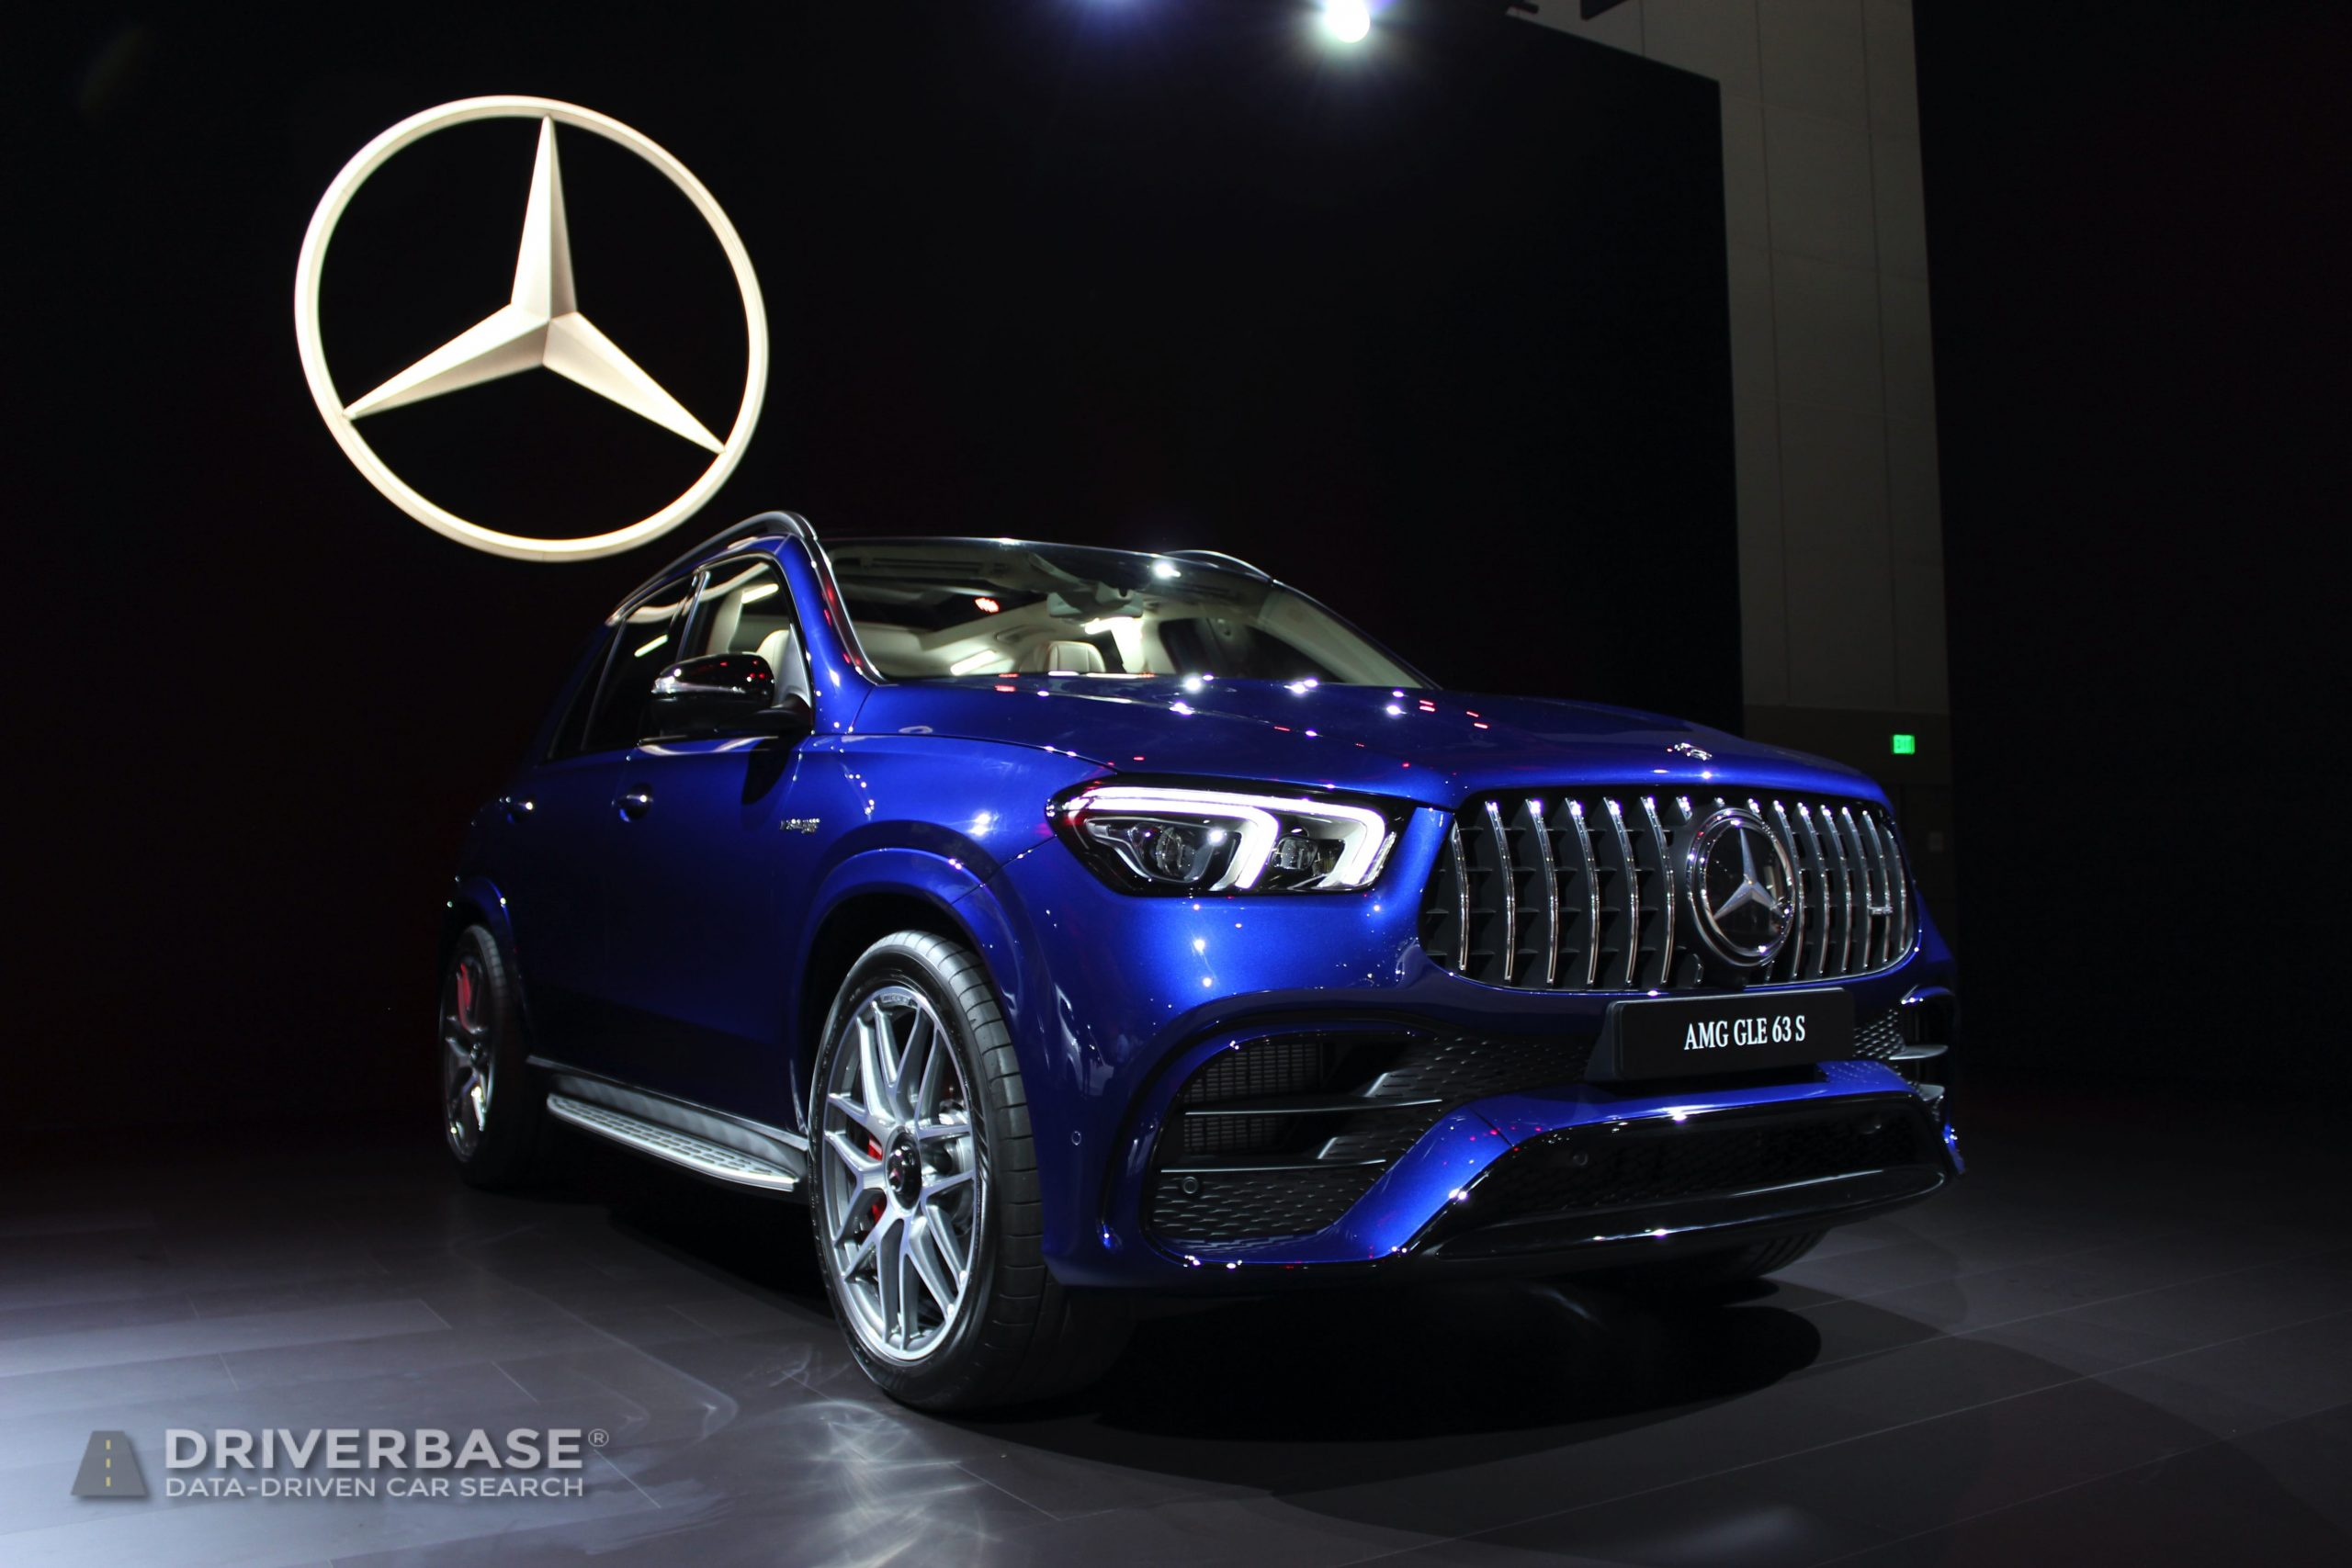 2020 Mercedes-Benz AMG GLE 63 S at the 2019 Los Angeles Auto Show